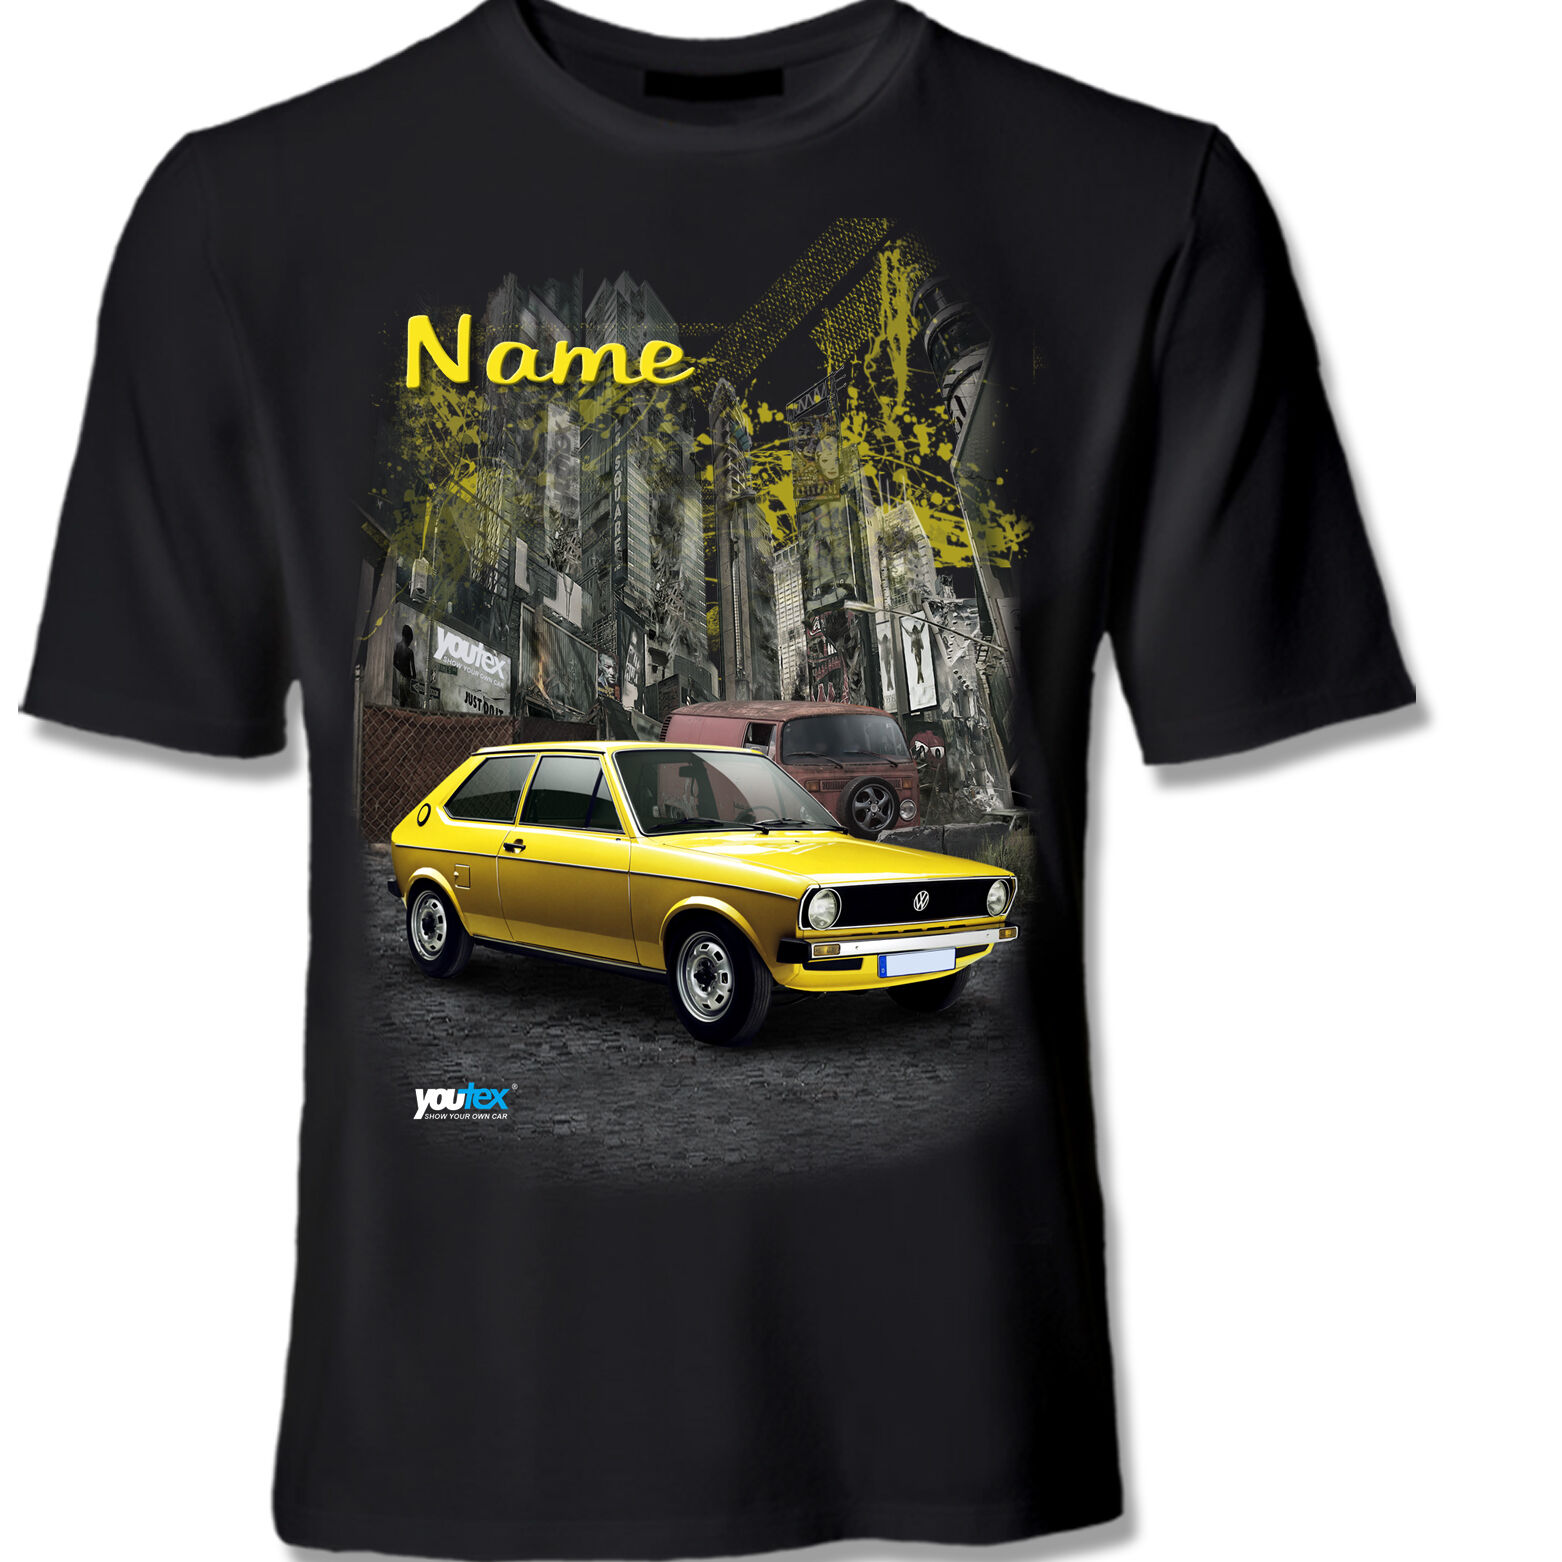 Polo 1 VW Tuning T Shirt Shirt T-Shirt original YOUTEX